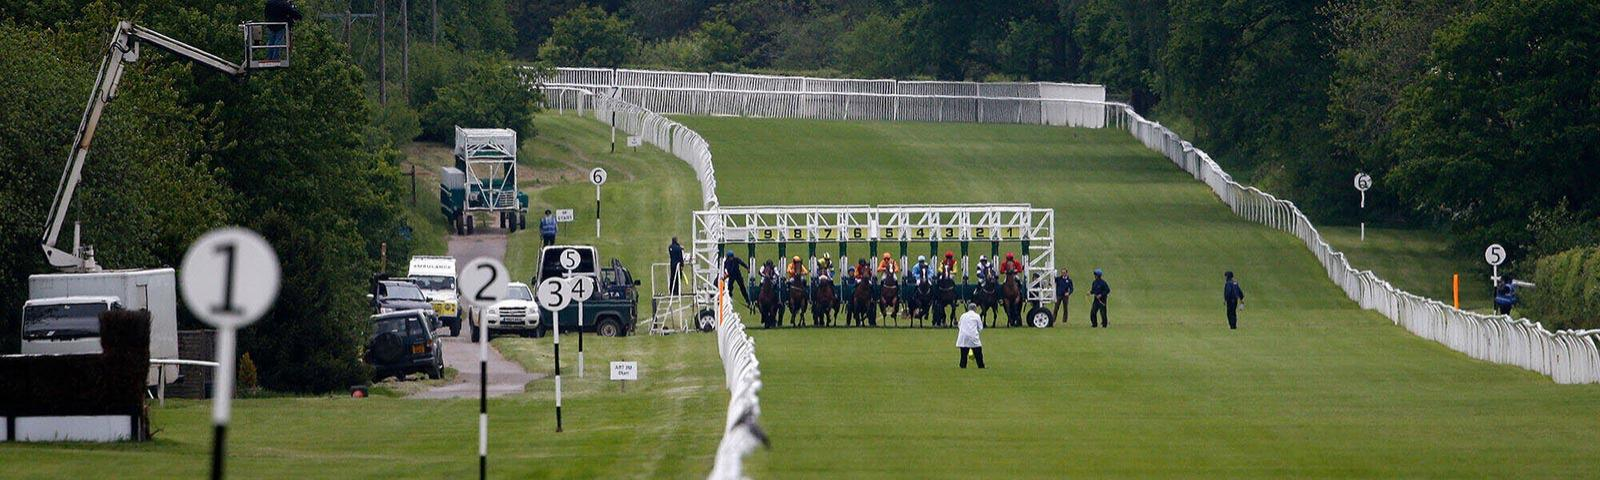 A still image captures the moment the field of horses are released from the starting gate.